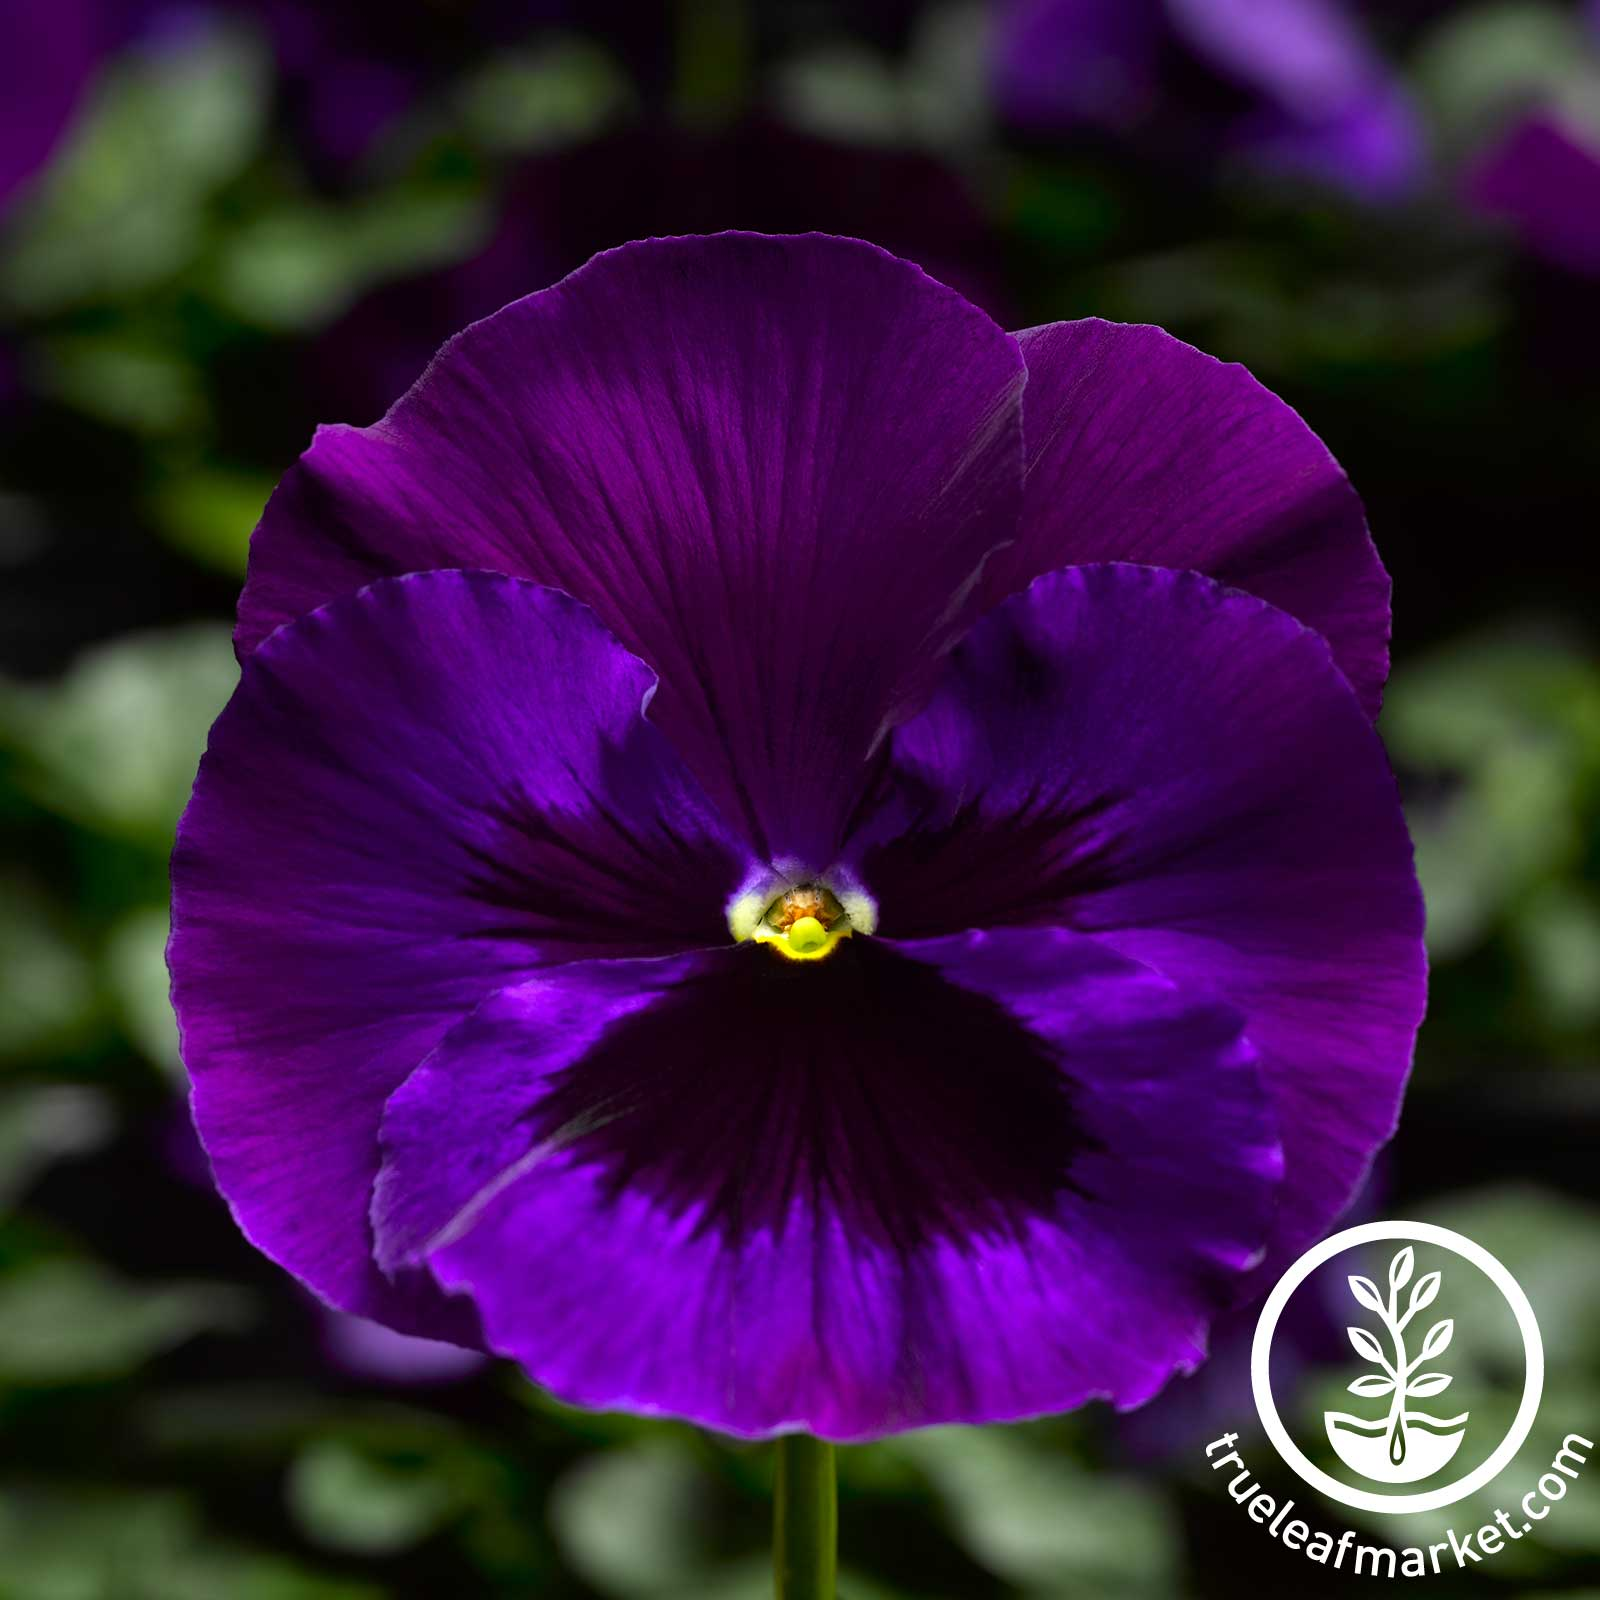 Pansy Delta Premium Series Neon Violet Seed